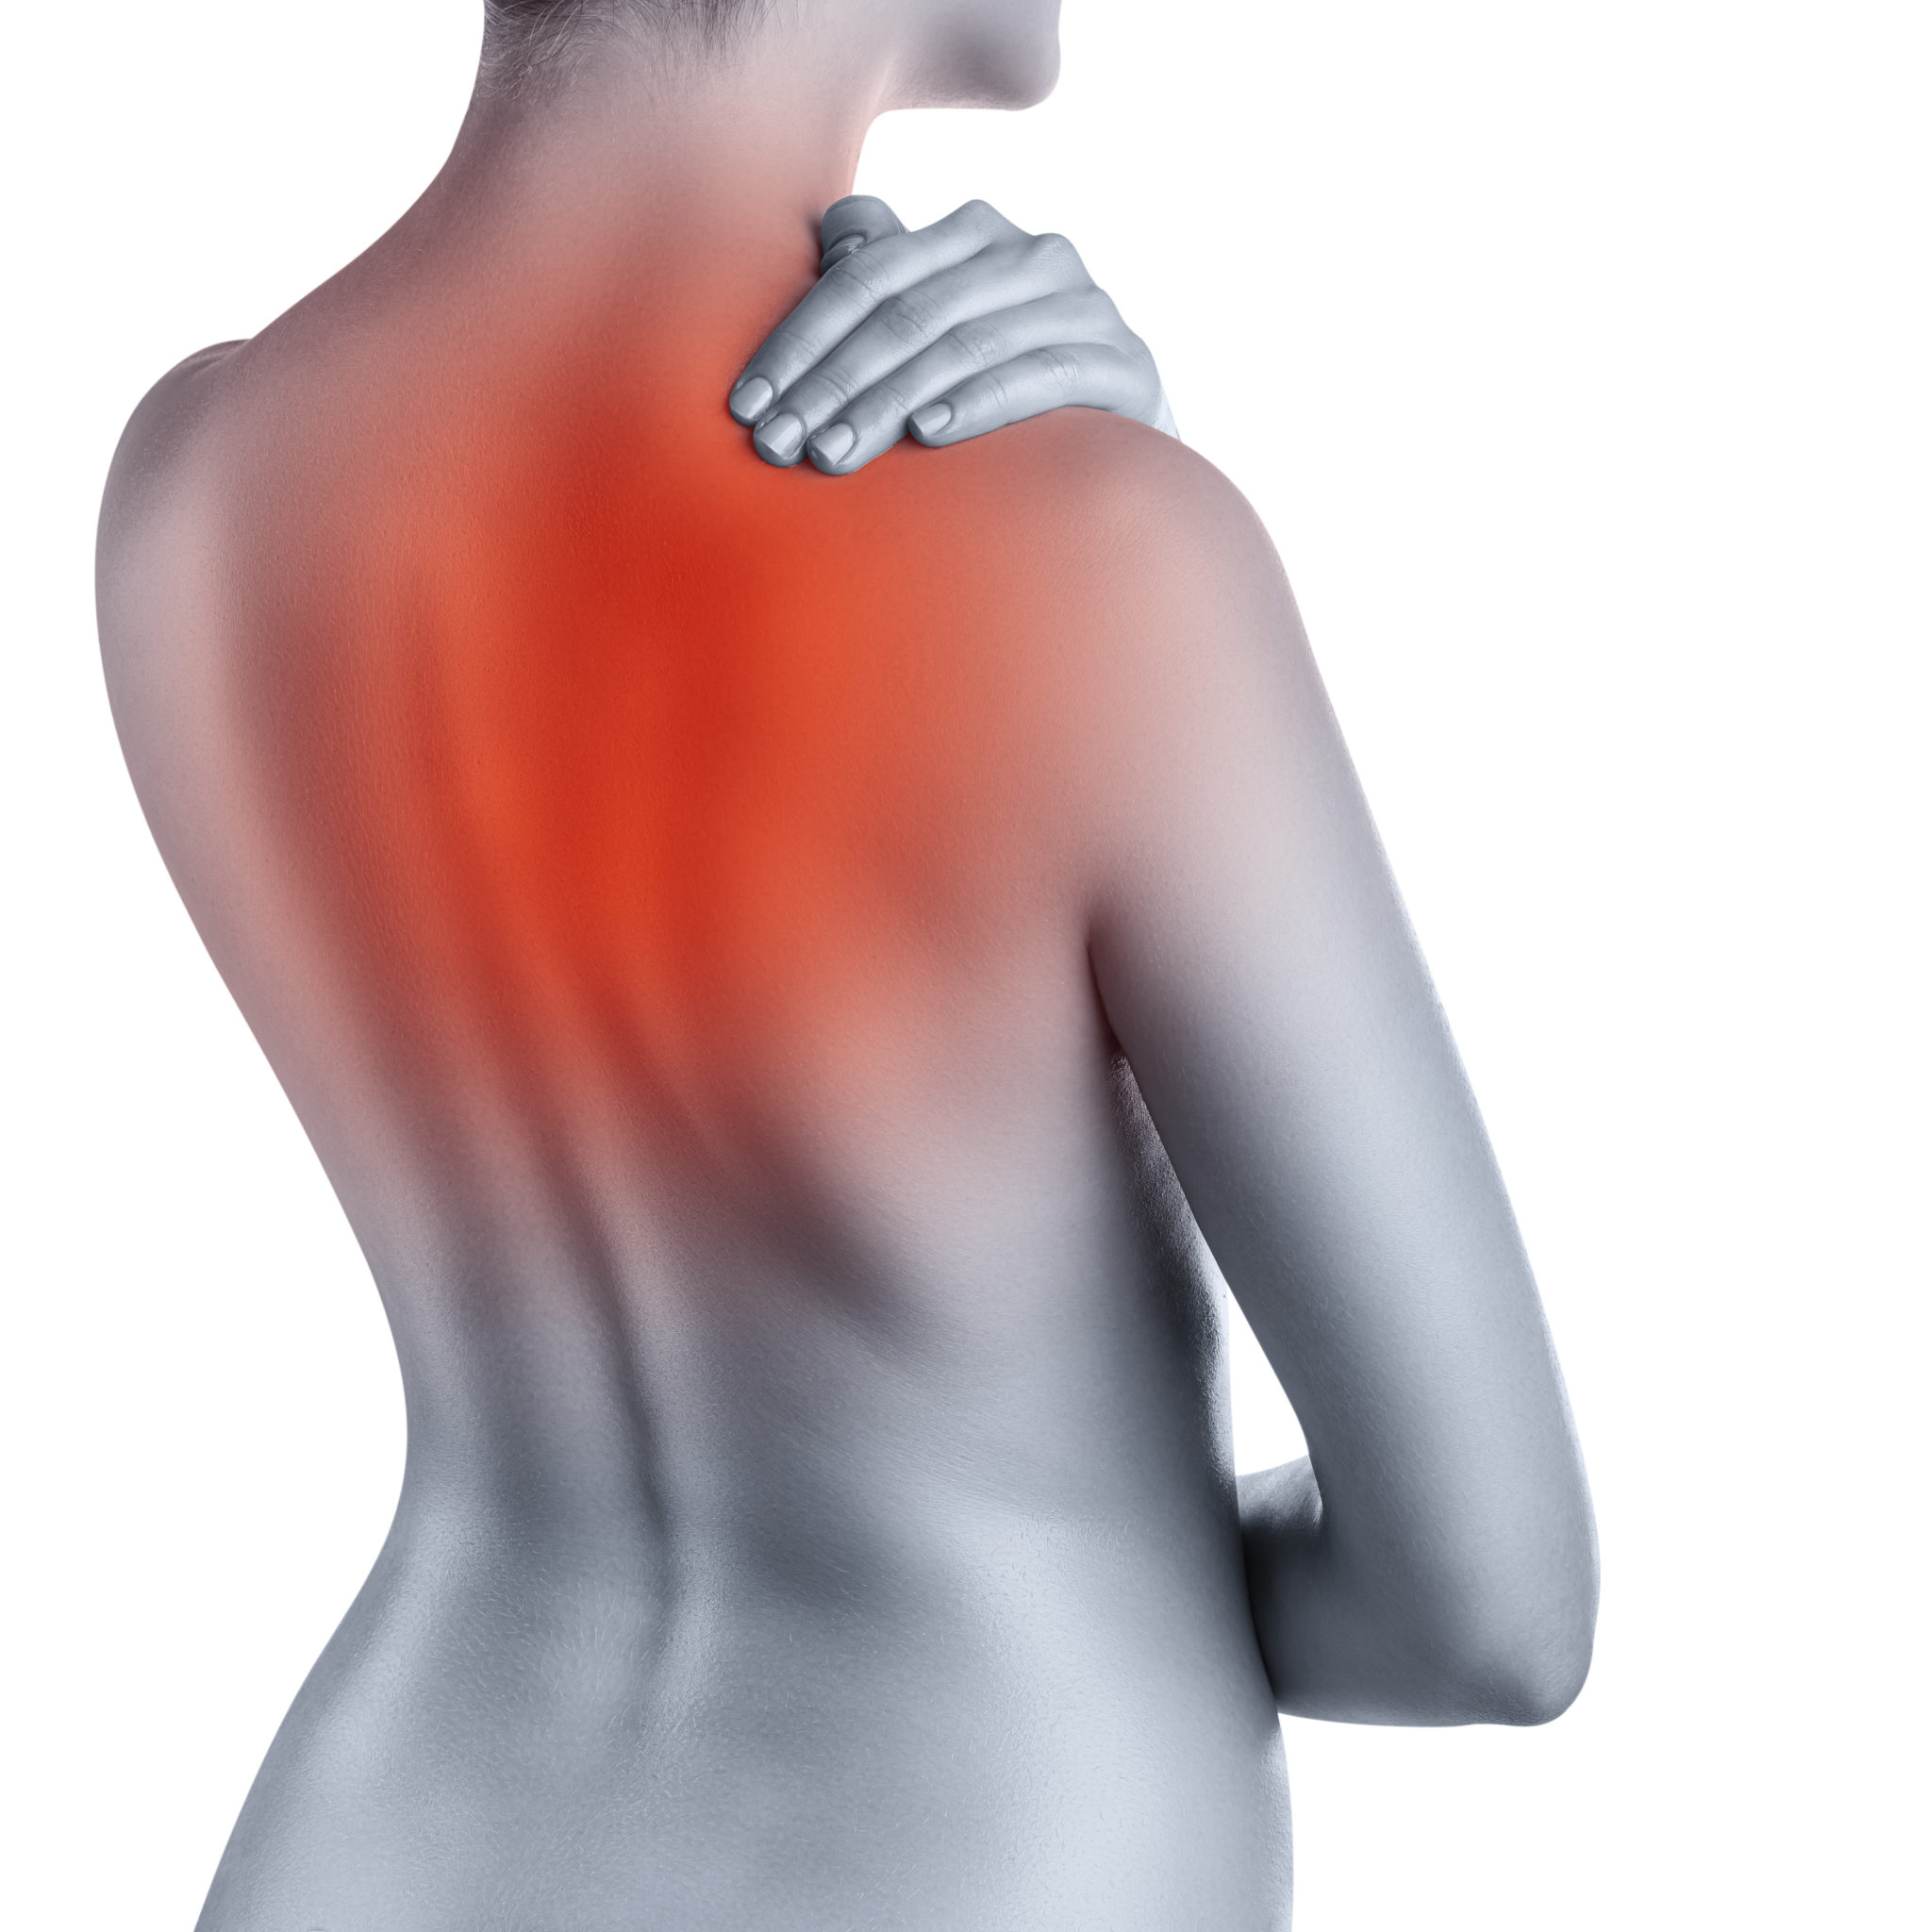 6 Causes and Treatments of Lower Back Pain on Left Side